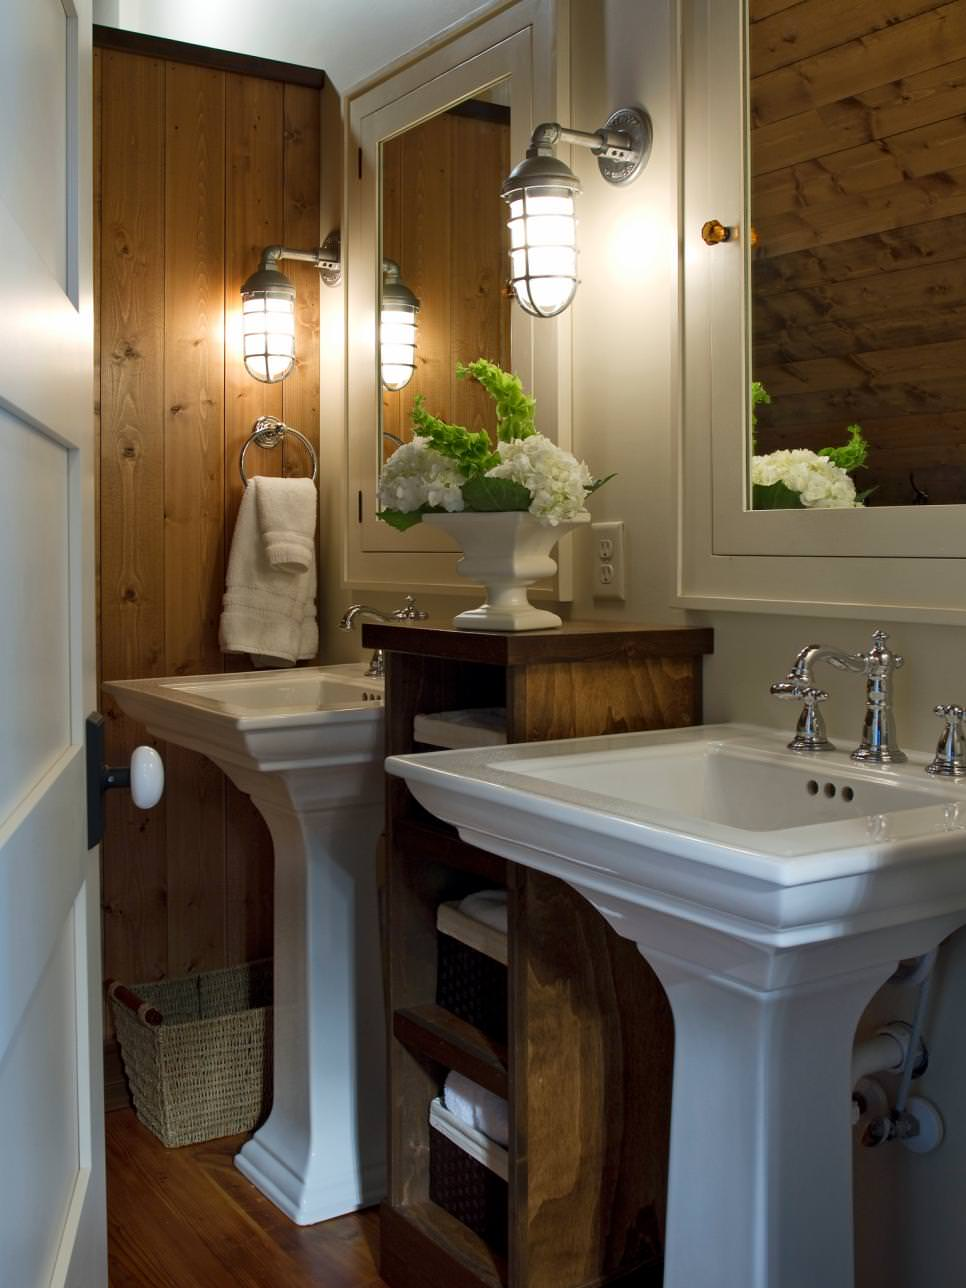 24+ Bathroom Pedestal Sinks Ideas, Designs  Design Trends - Premium ...